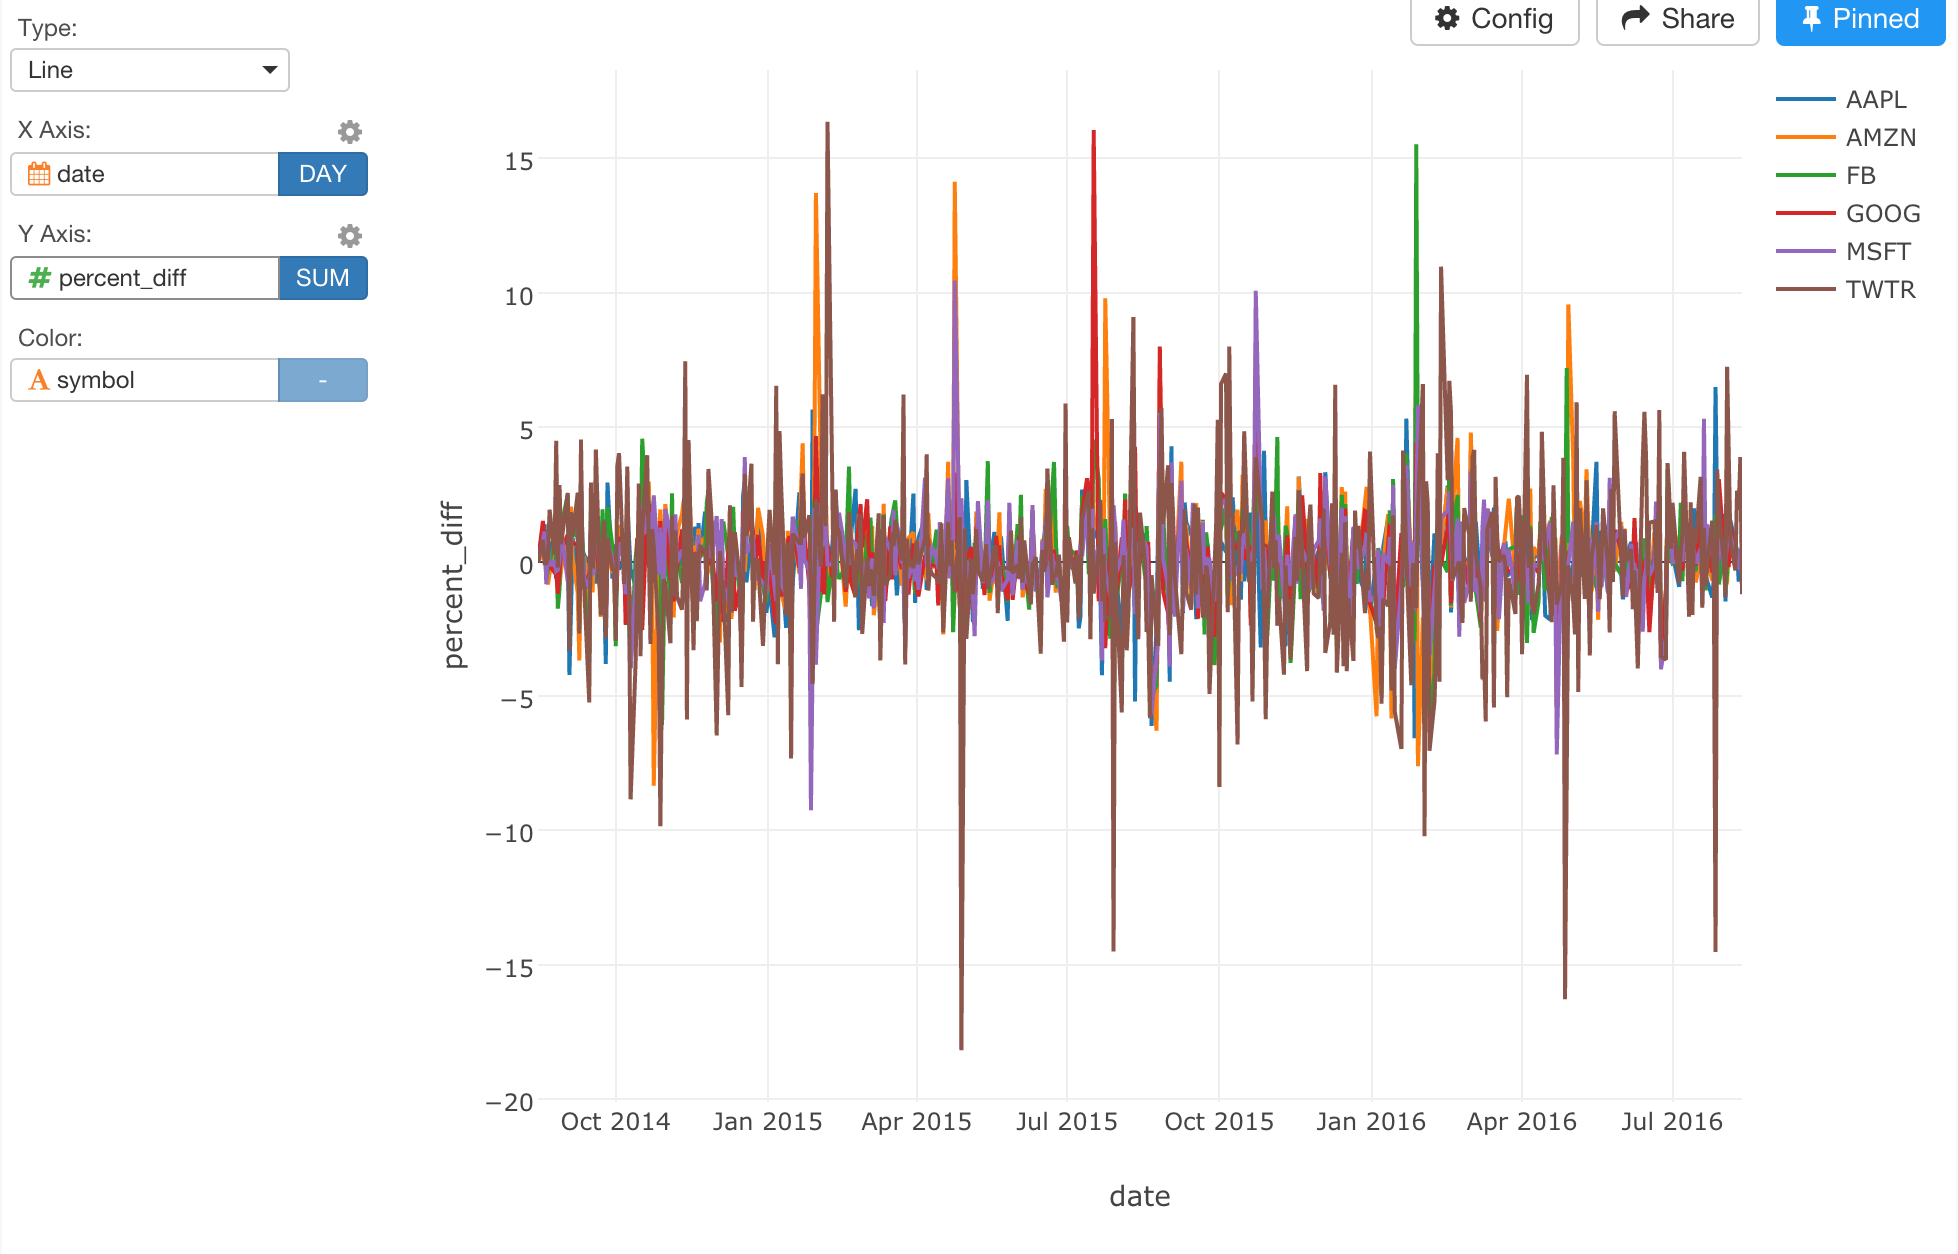 Introducing Time Series Analysis with dplyr - learn data science